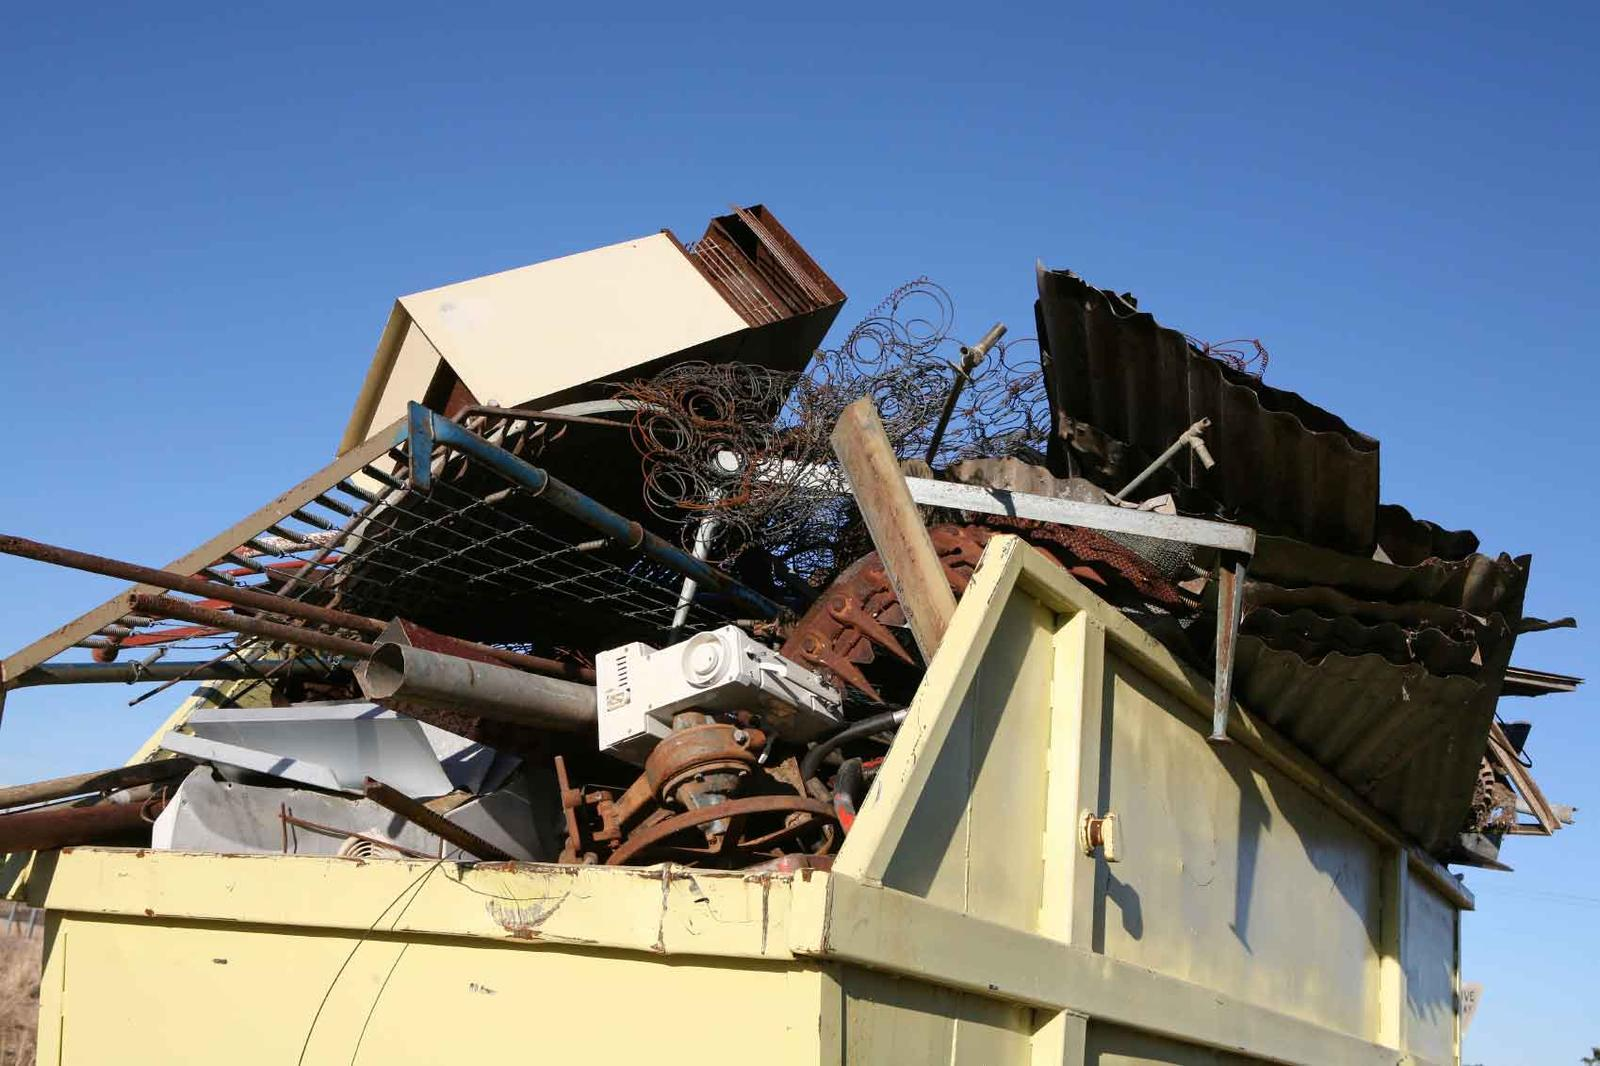 Services That Provide Site Preparation and Junk Removal